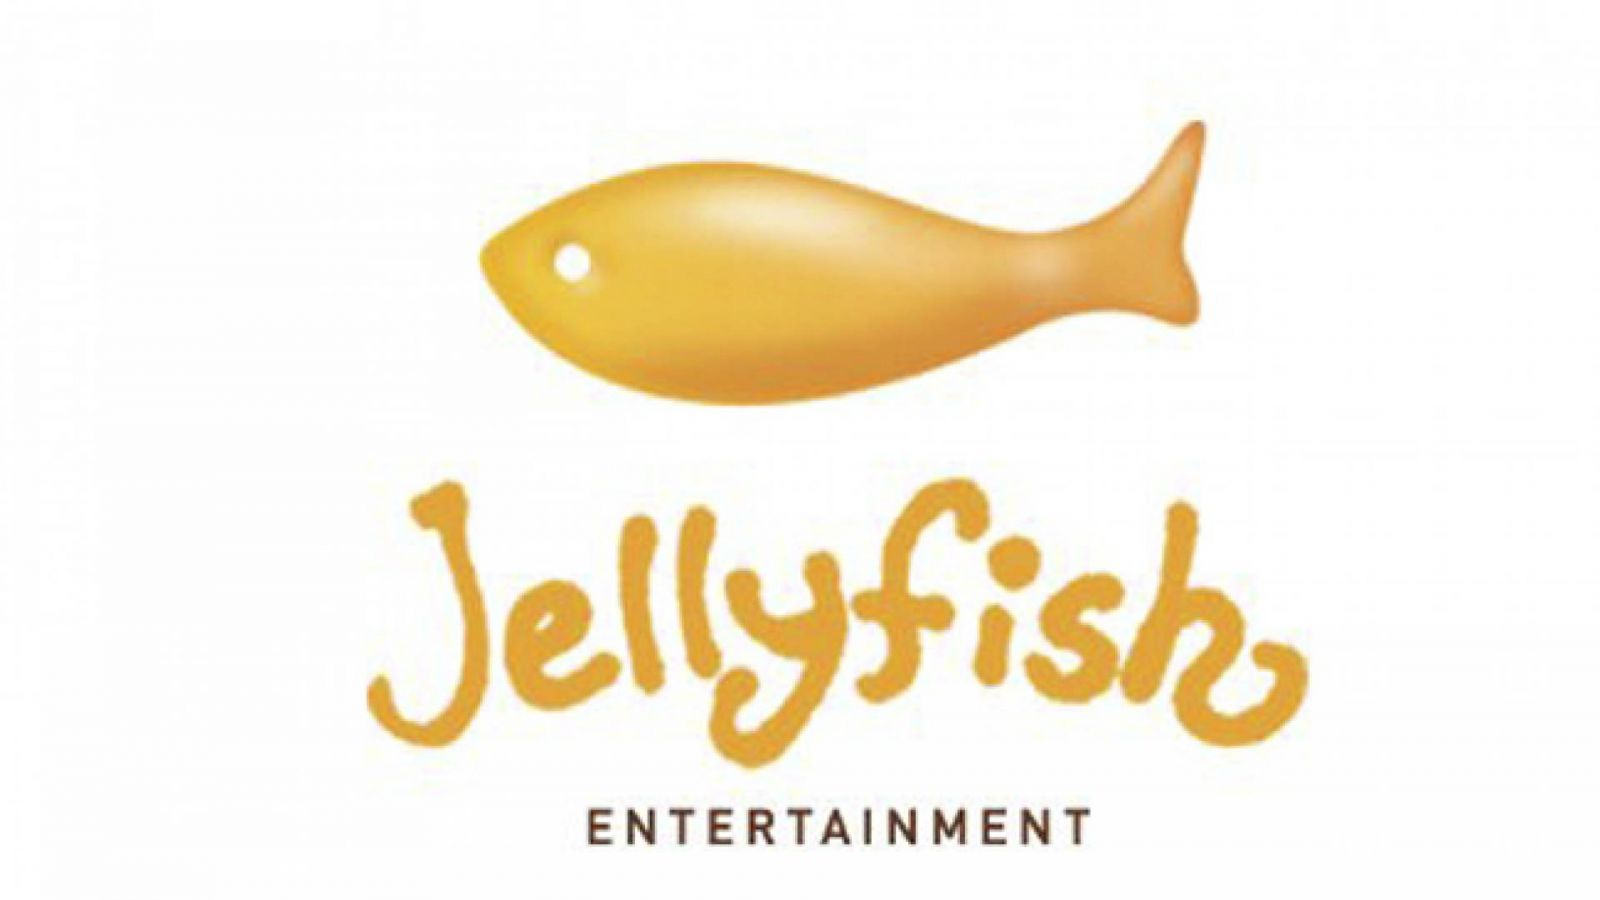 Jellyfish Entertainmentin joulualbumi © Jellyfish Entertainment